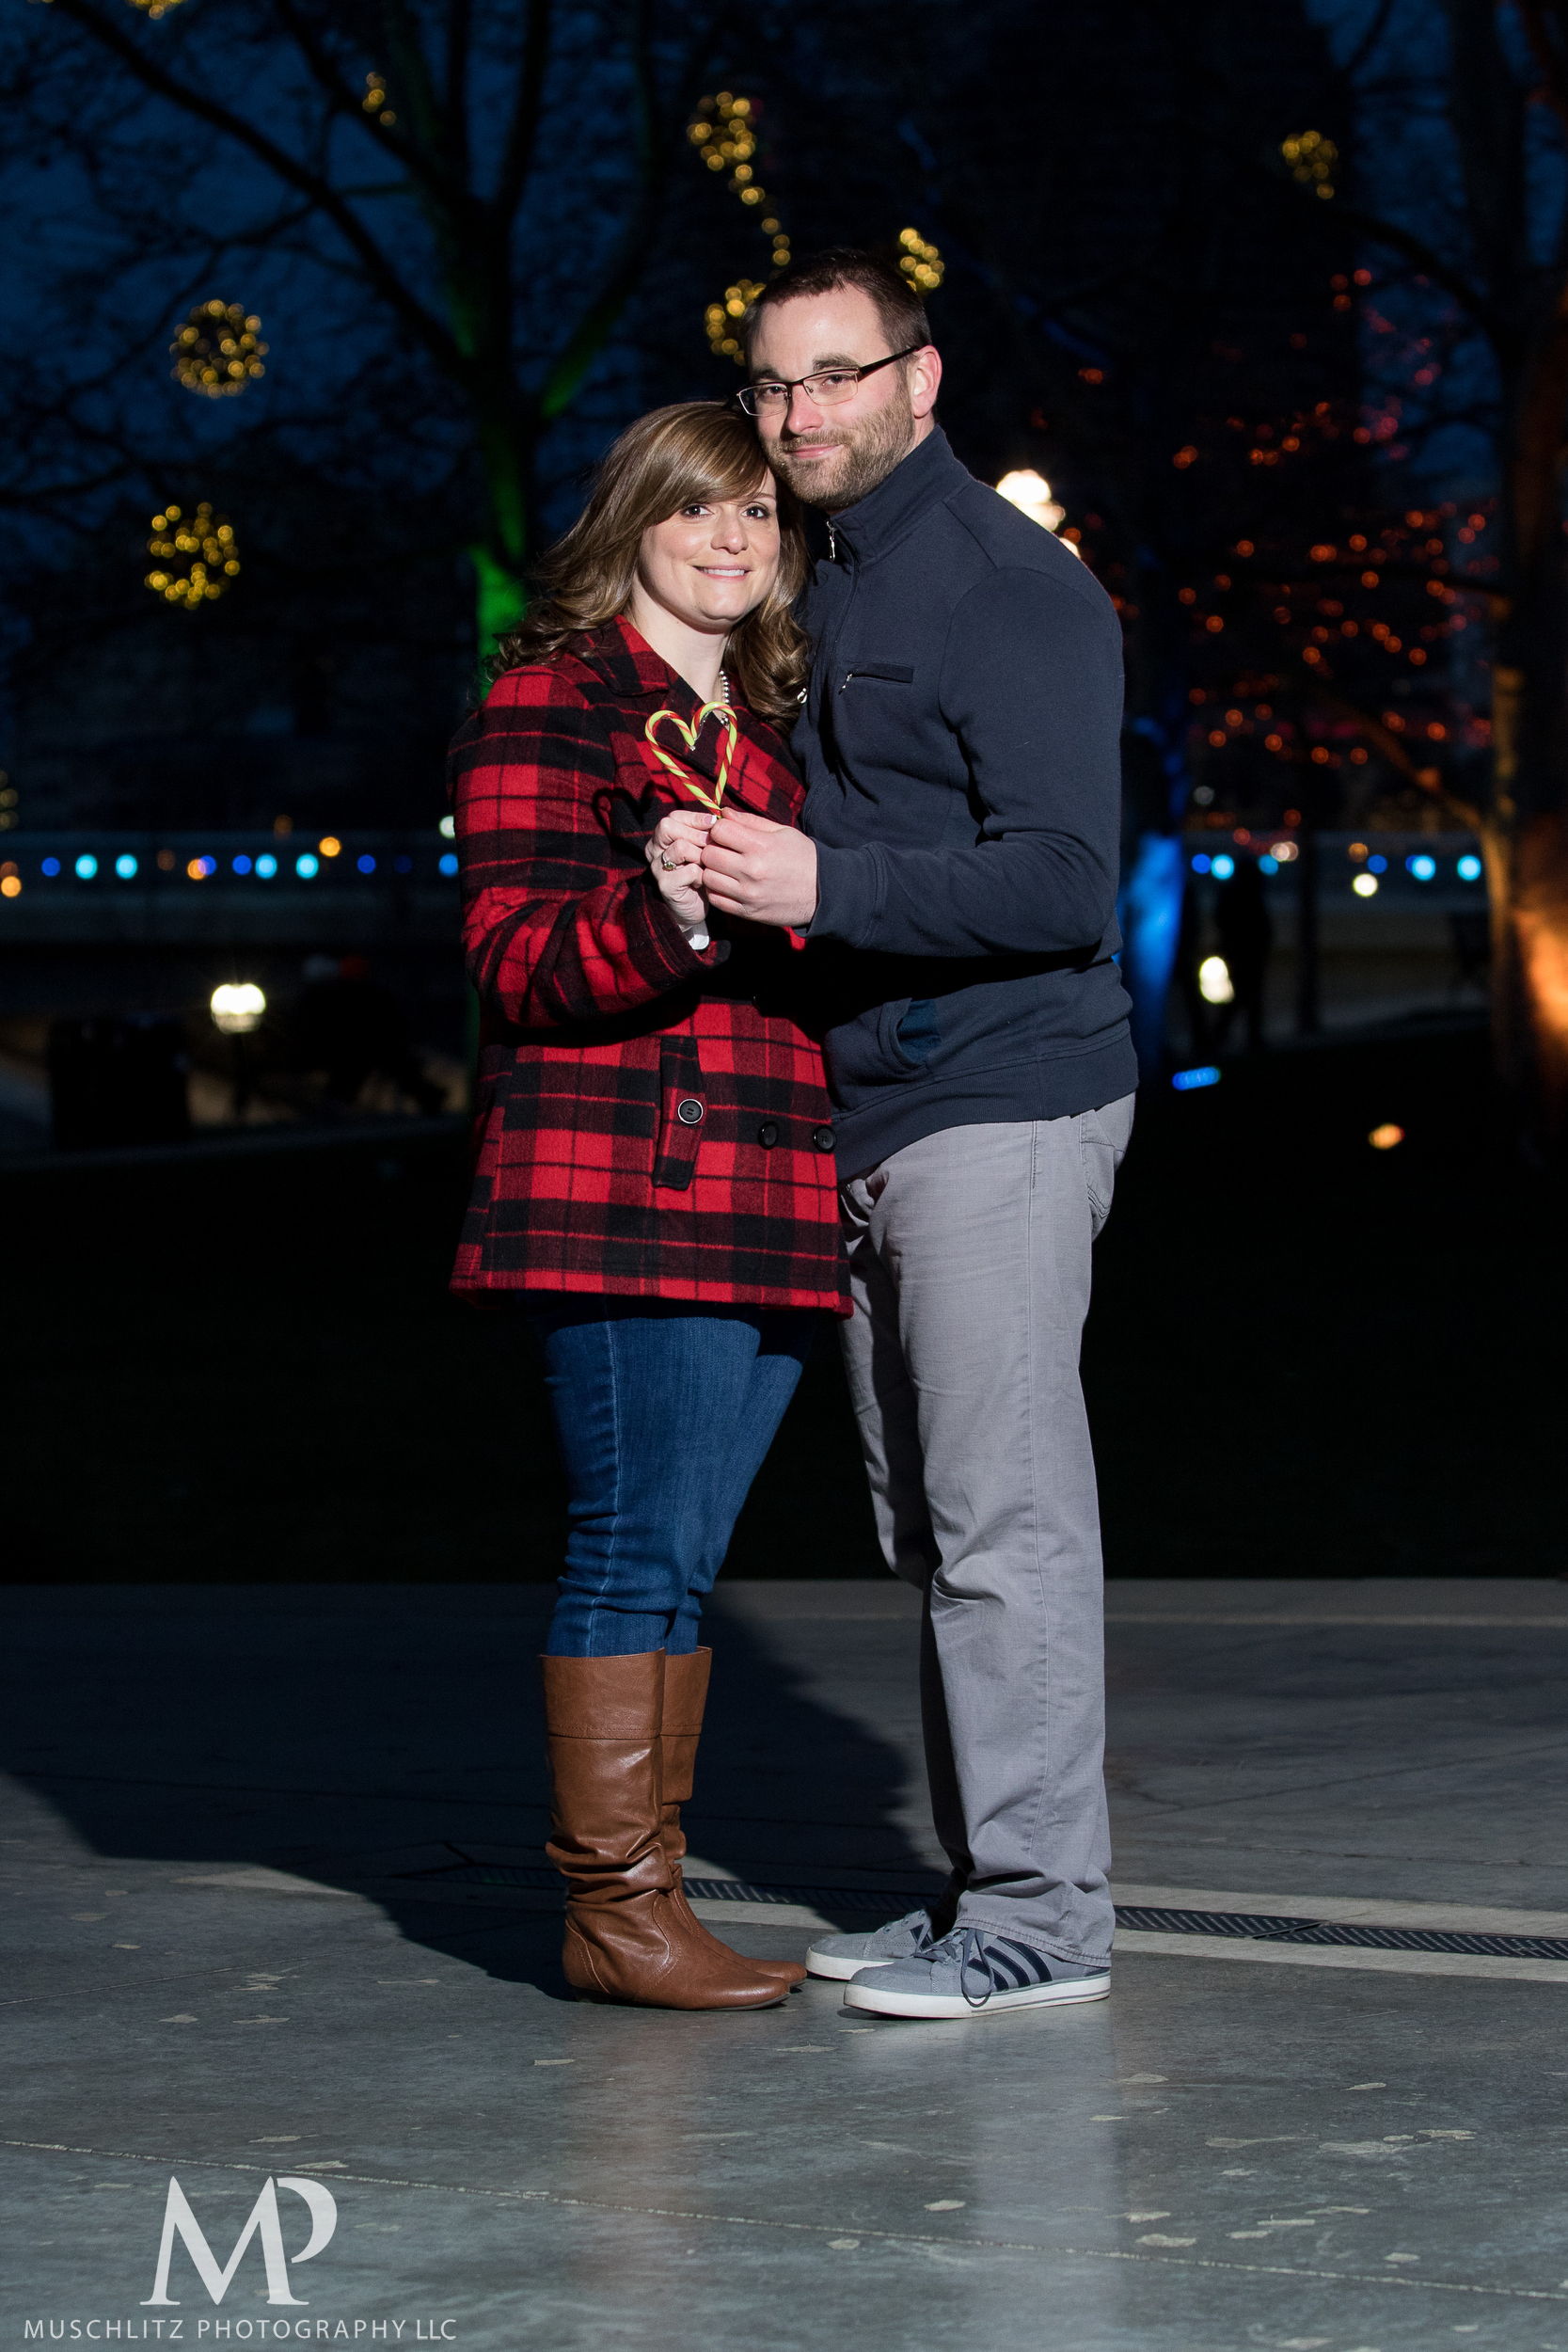 bicentennial-park-engagement-session-holiday-portraits-columbus-ohio-045.JPG